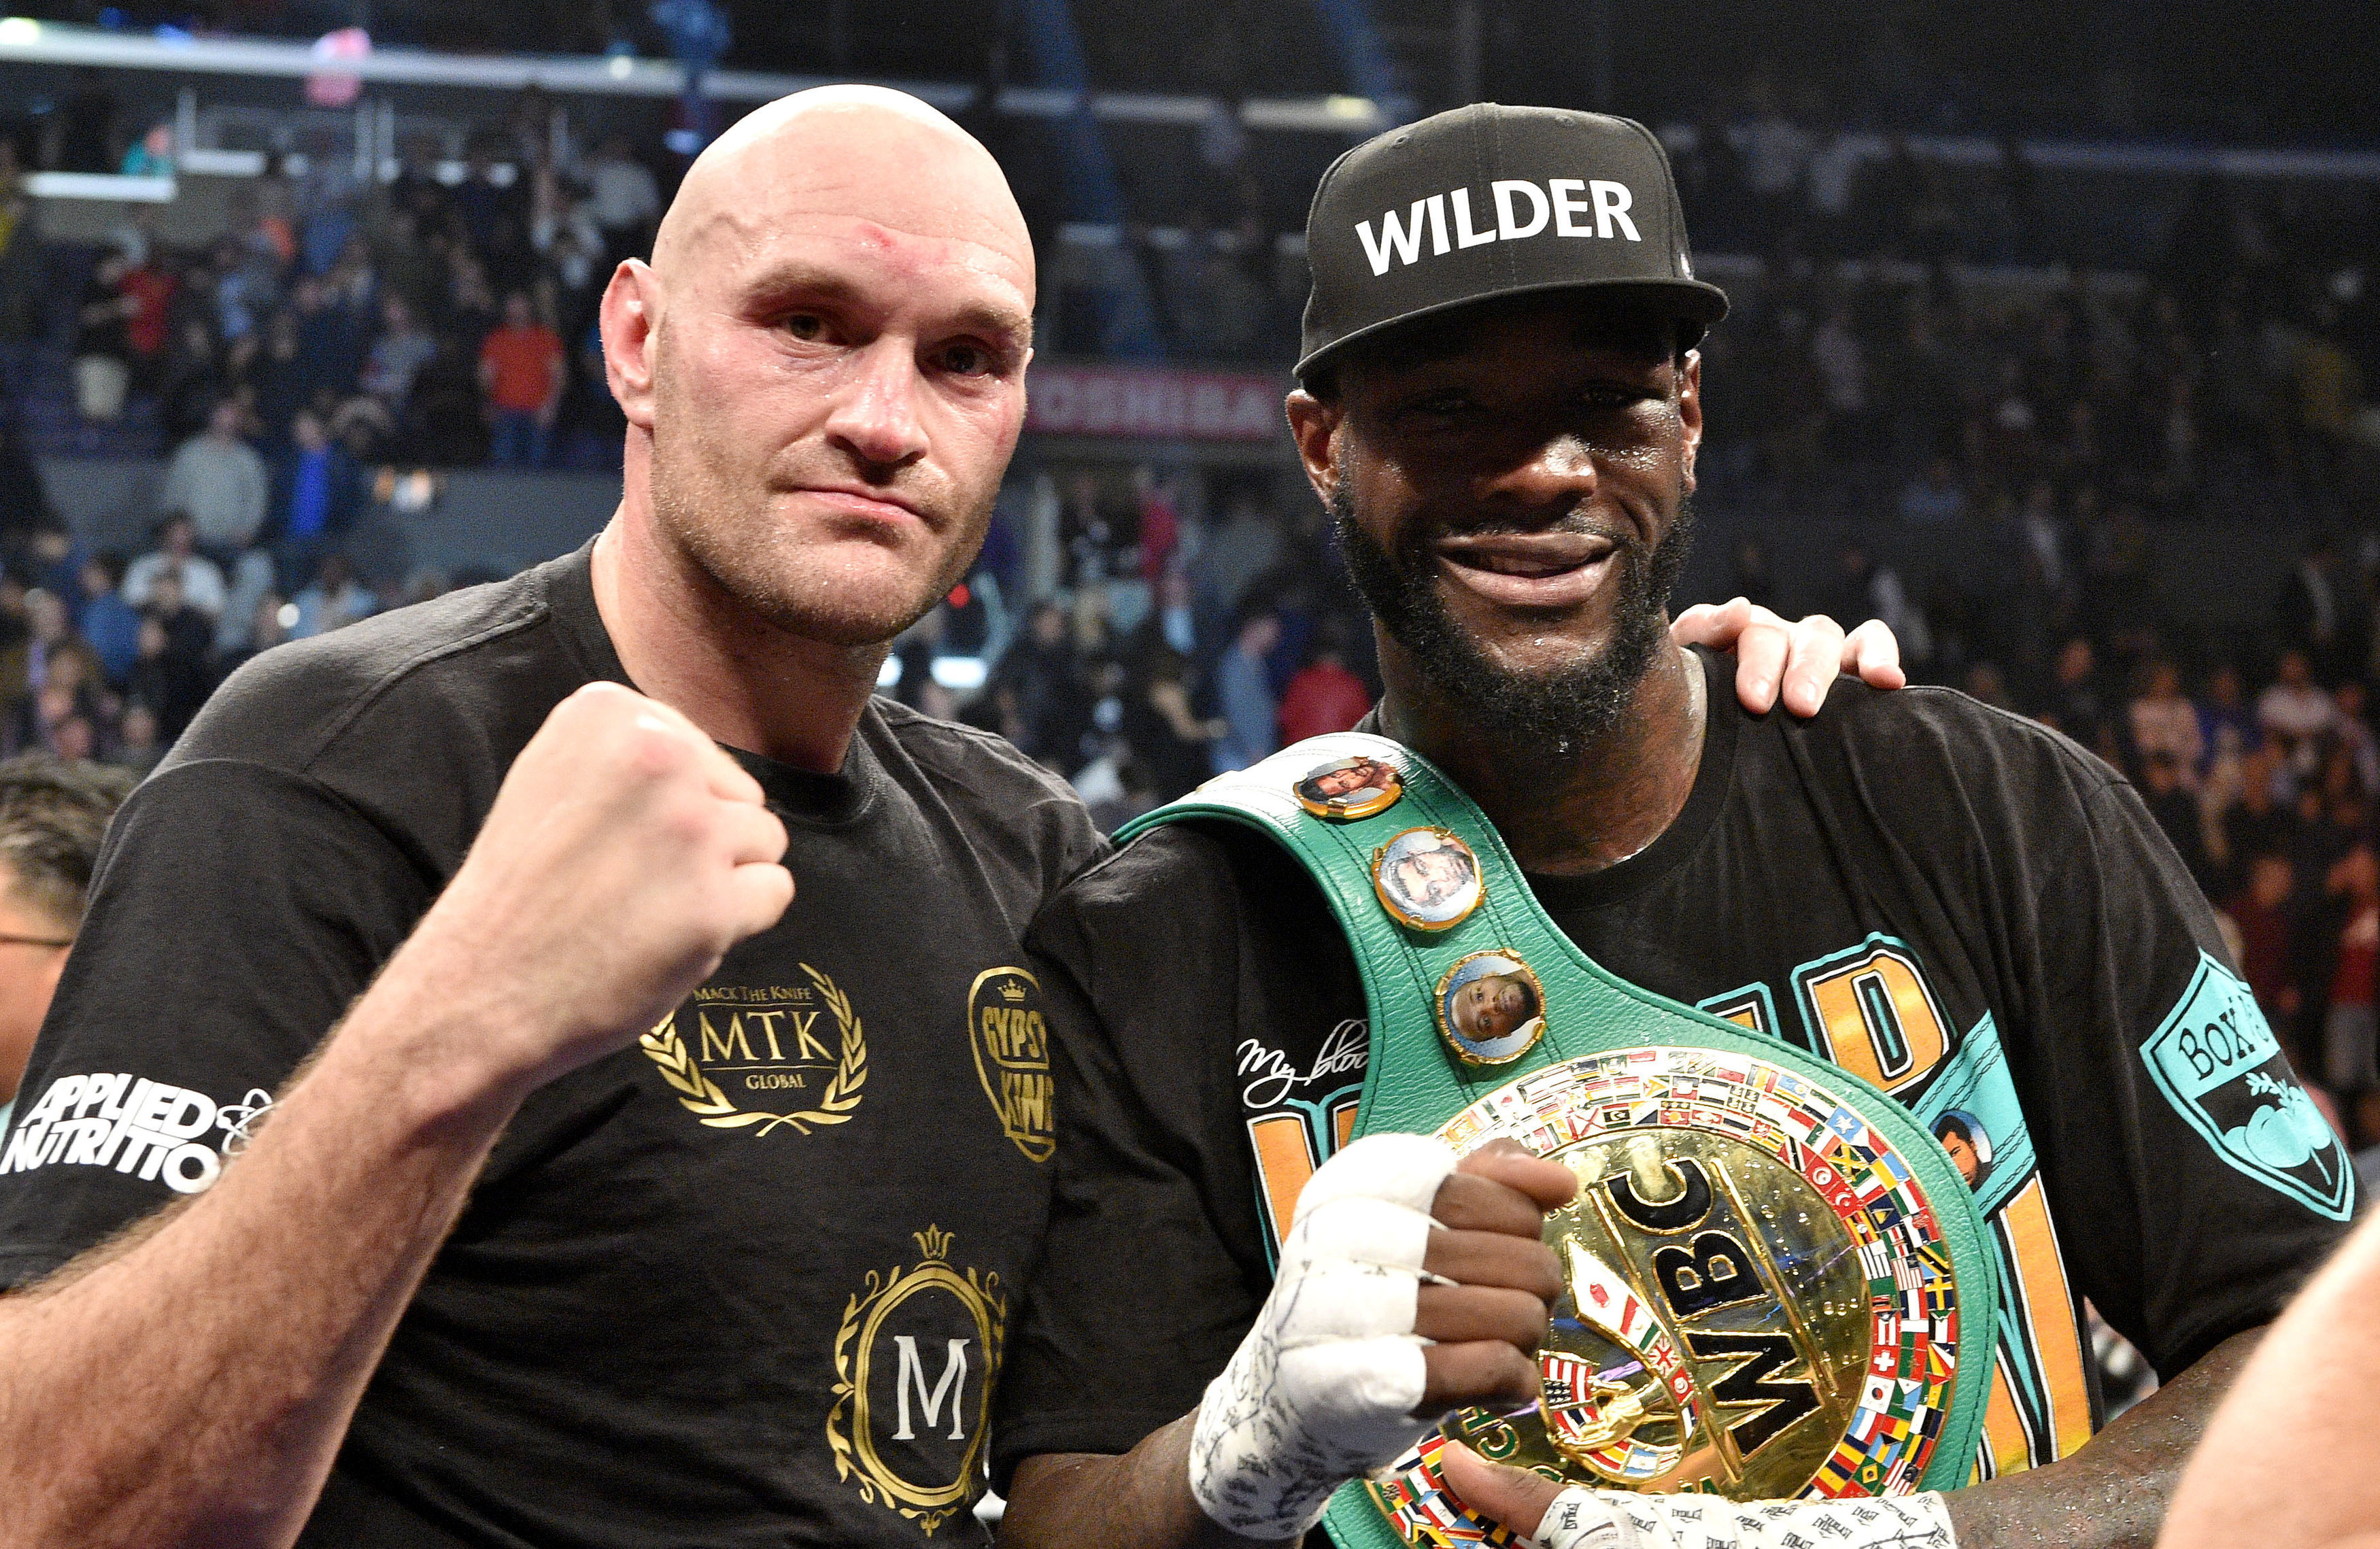 Boxing fans would have much rather seen Joshua fight either Tyson Fury or Deontay Wilder next